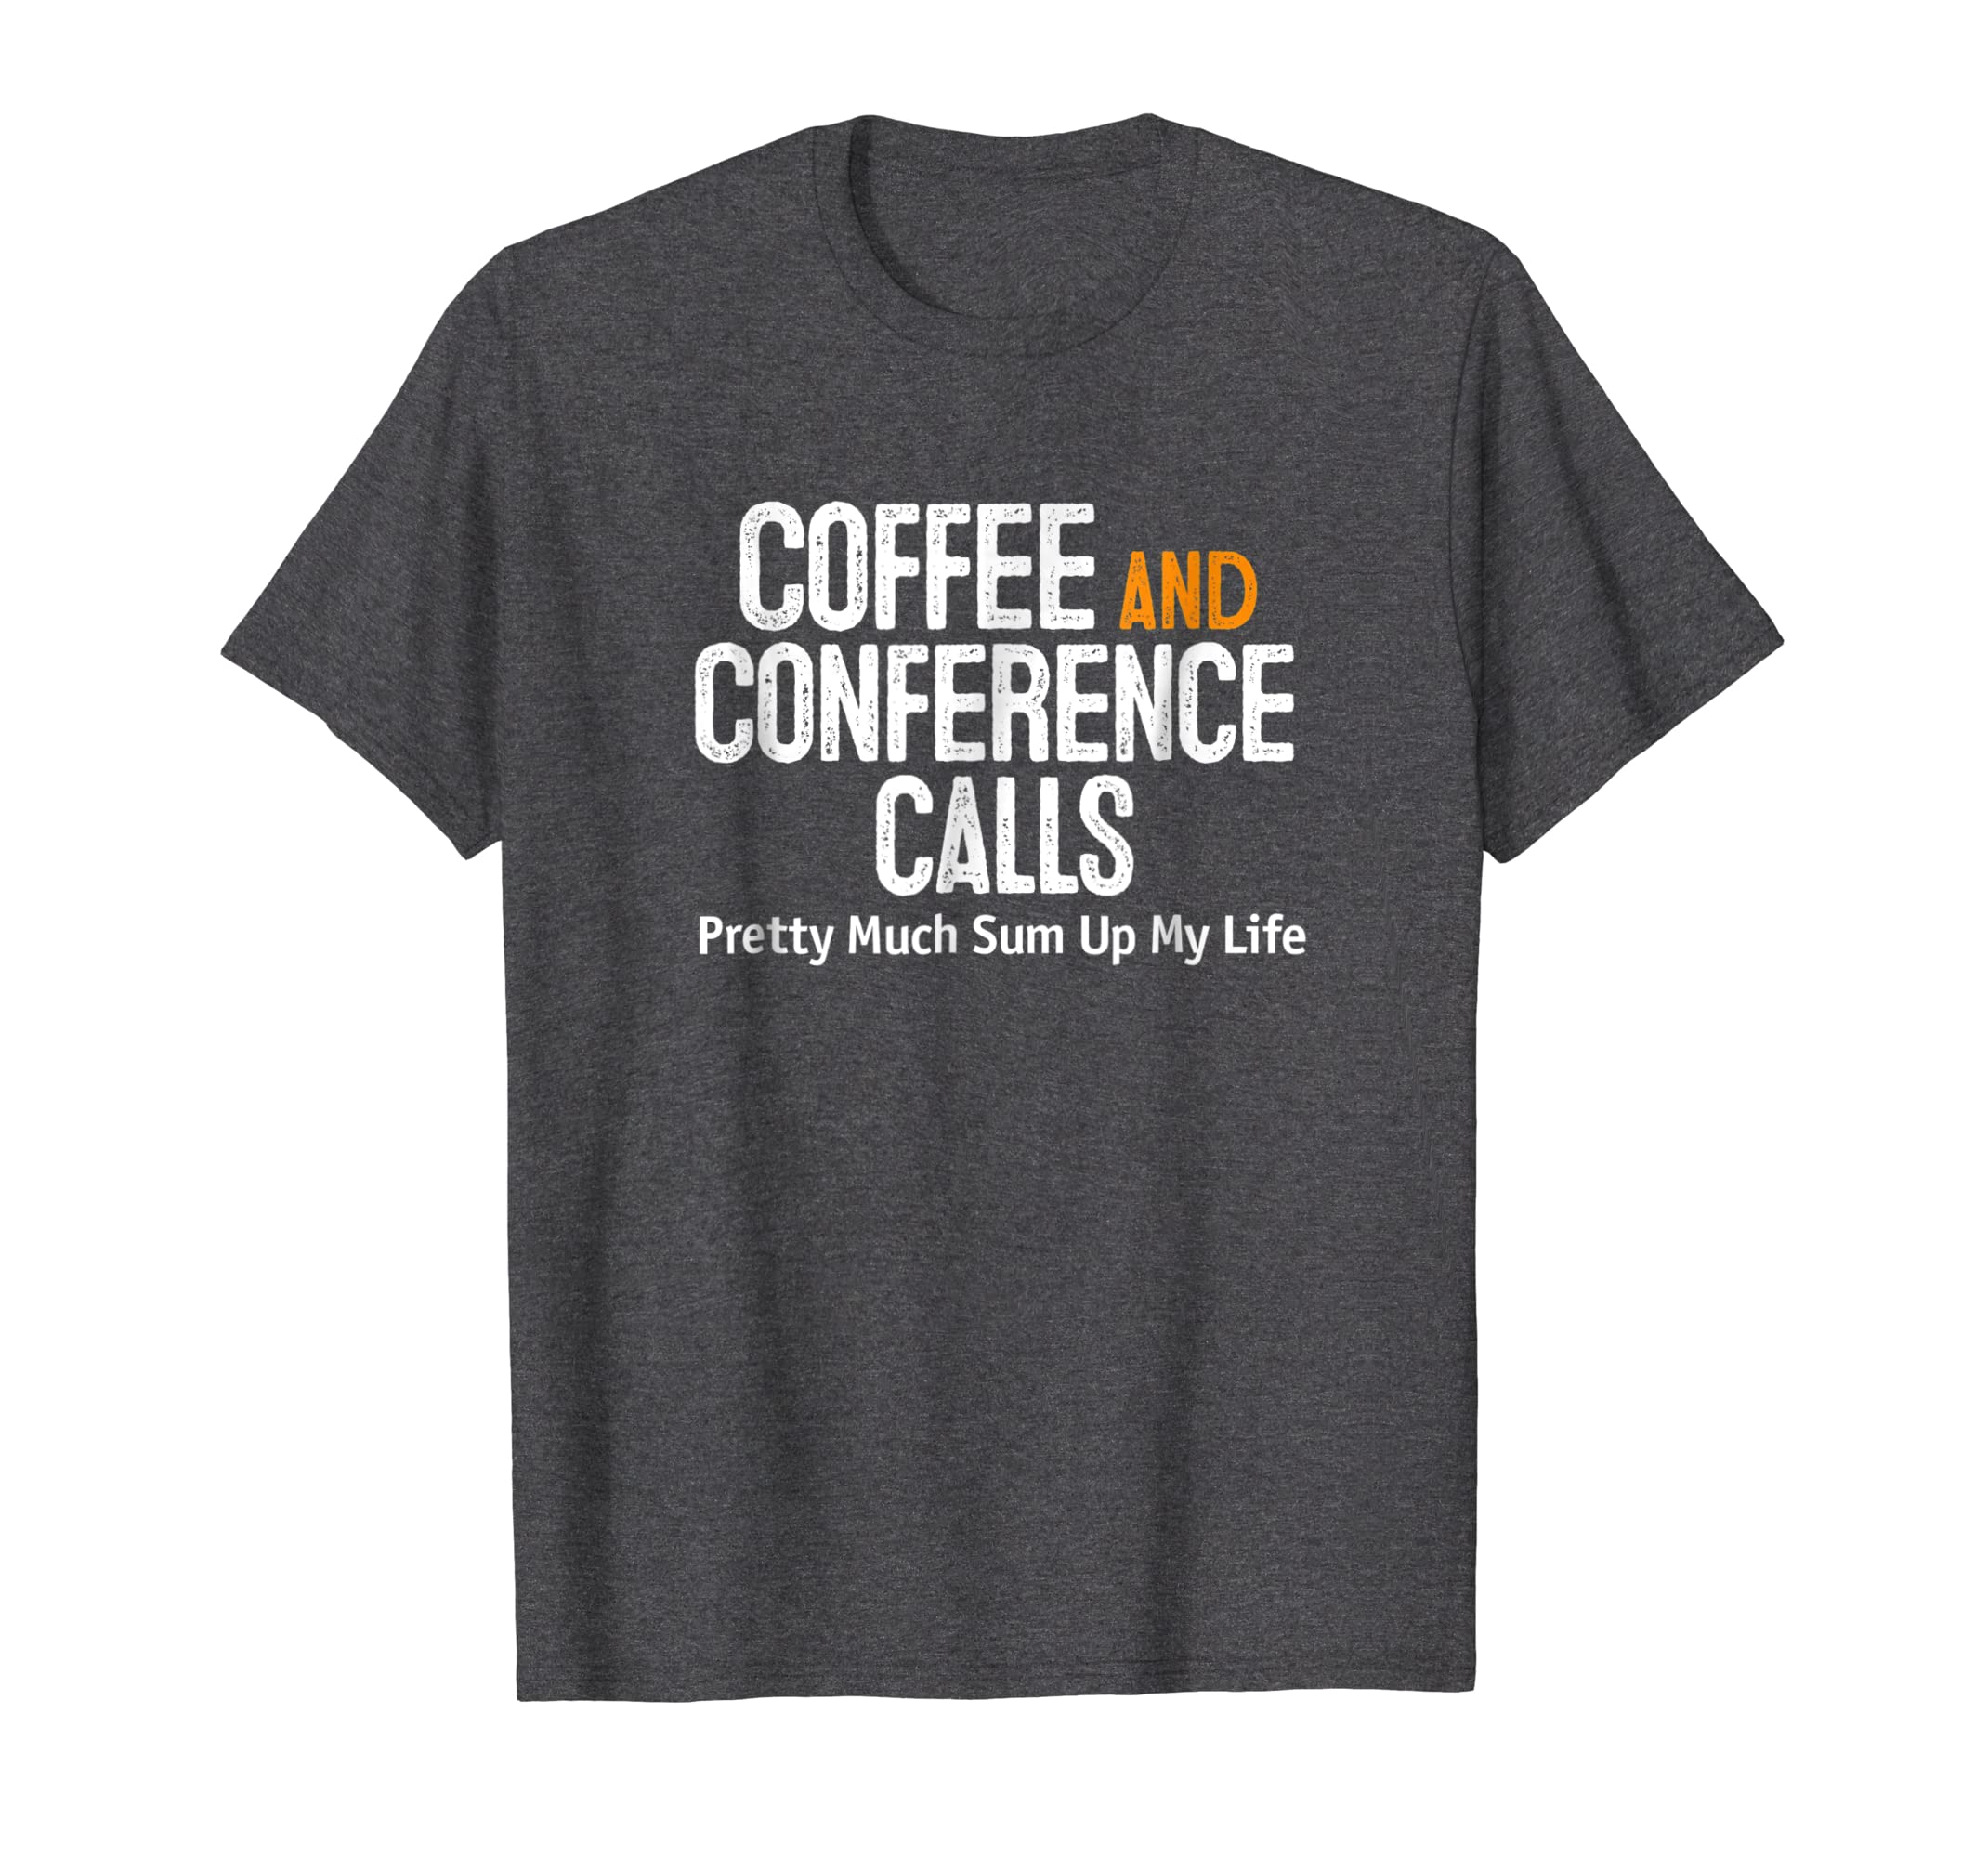 Coffee and Conference Calls Pretty Much Sum Up My Life